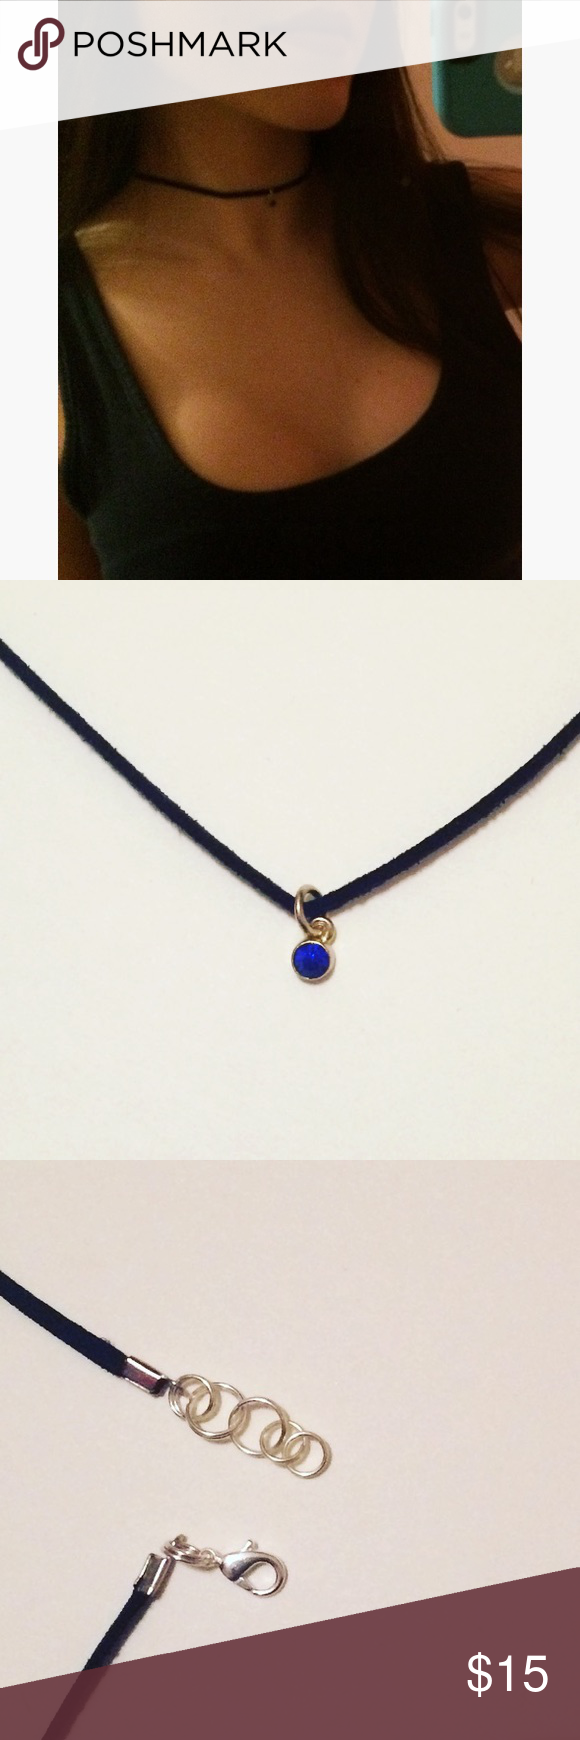 Black choker with blue jewel charm Black suede cording with a small blue jewel charm. Adjustable from 13 inches up to 13 1/2 inches. Please make sure measurement will fit before purchasing. (Not brand listed) Free People Jewelry Necklaces